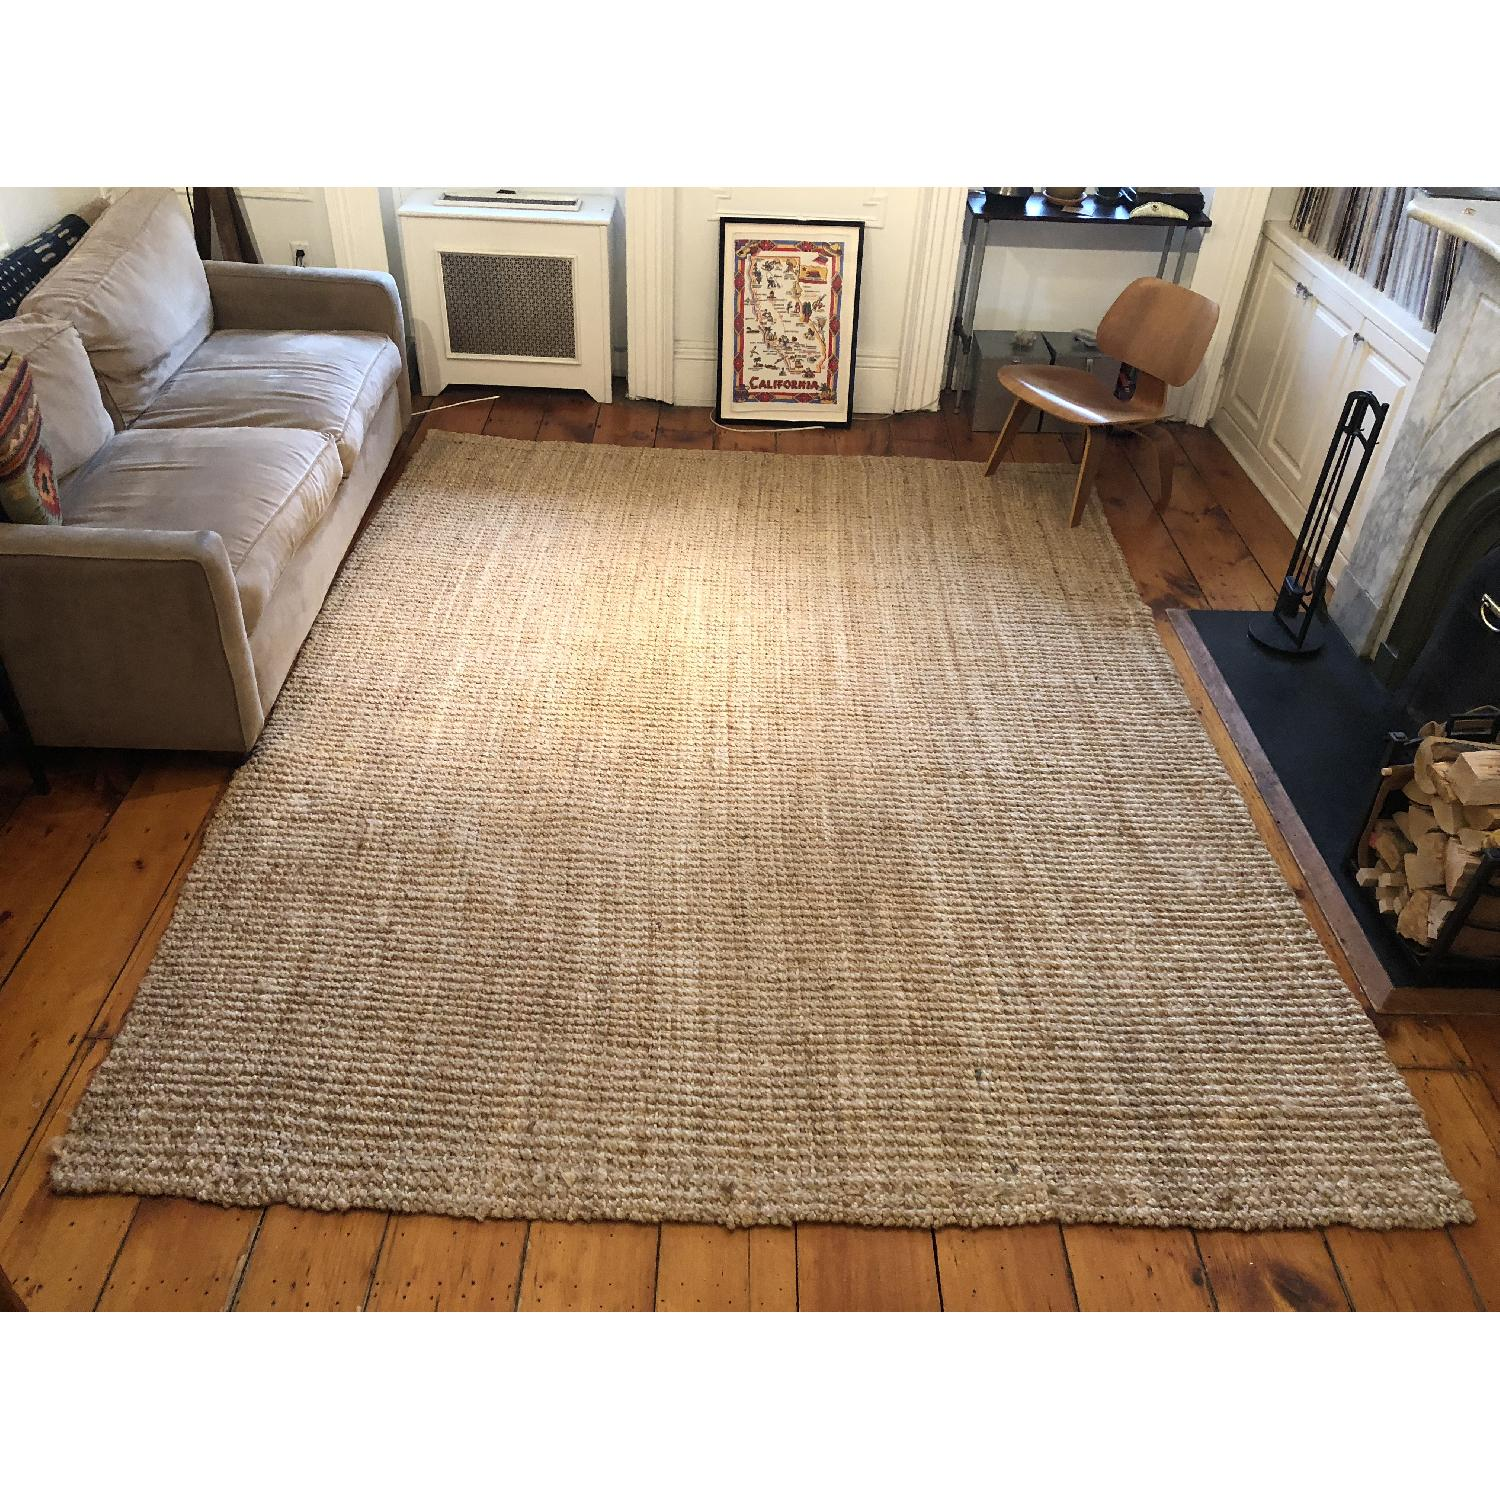 West Elm Jute Boucle Rug in Flax-0